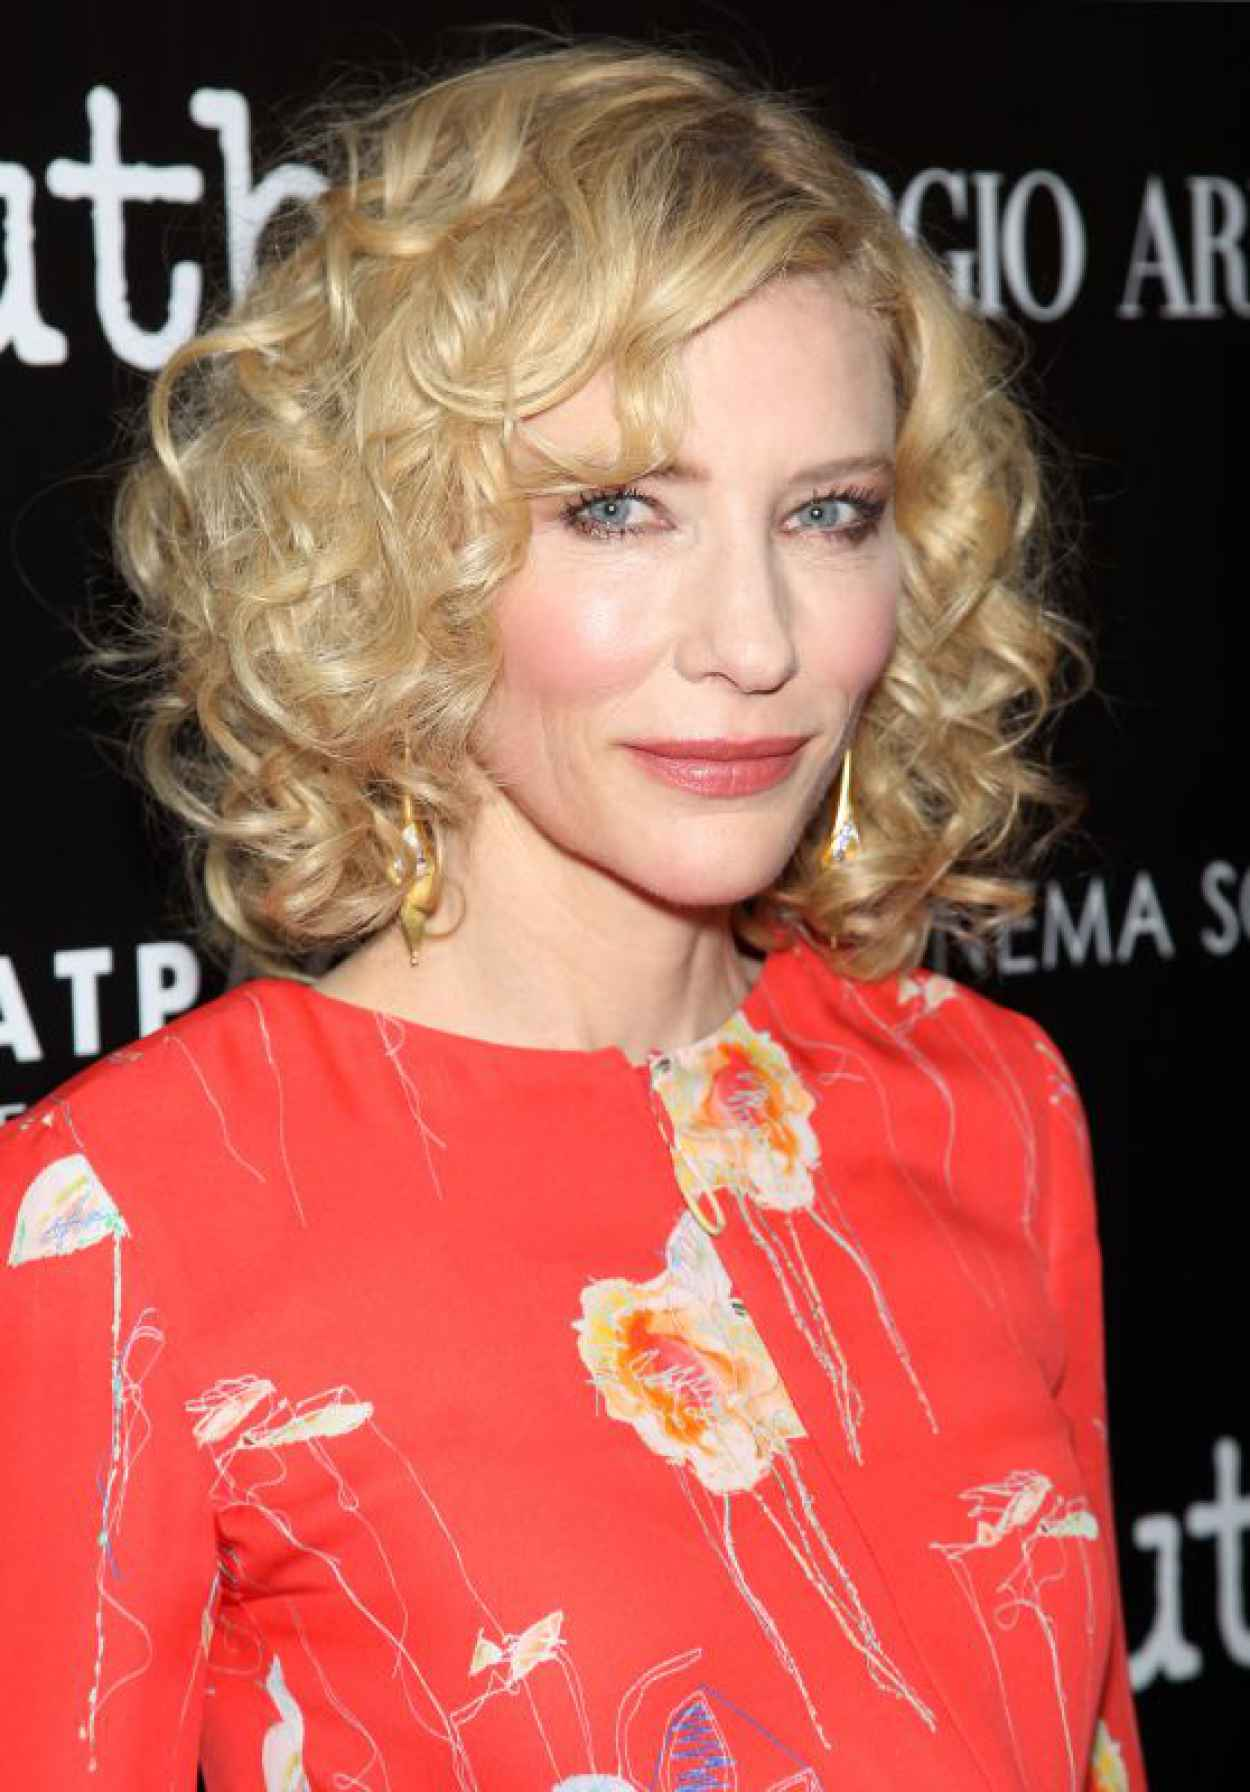 Cate Blanchett - Arriving the Premiere of Truth in New York-1